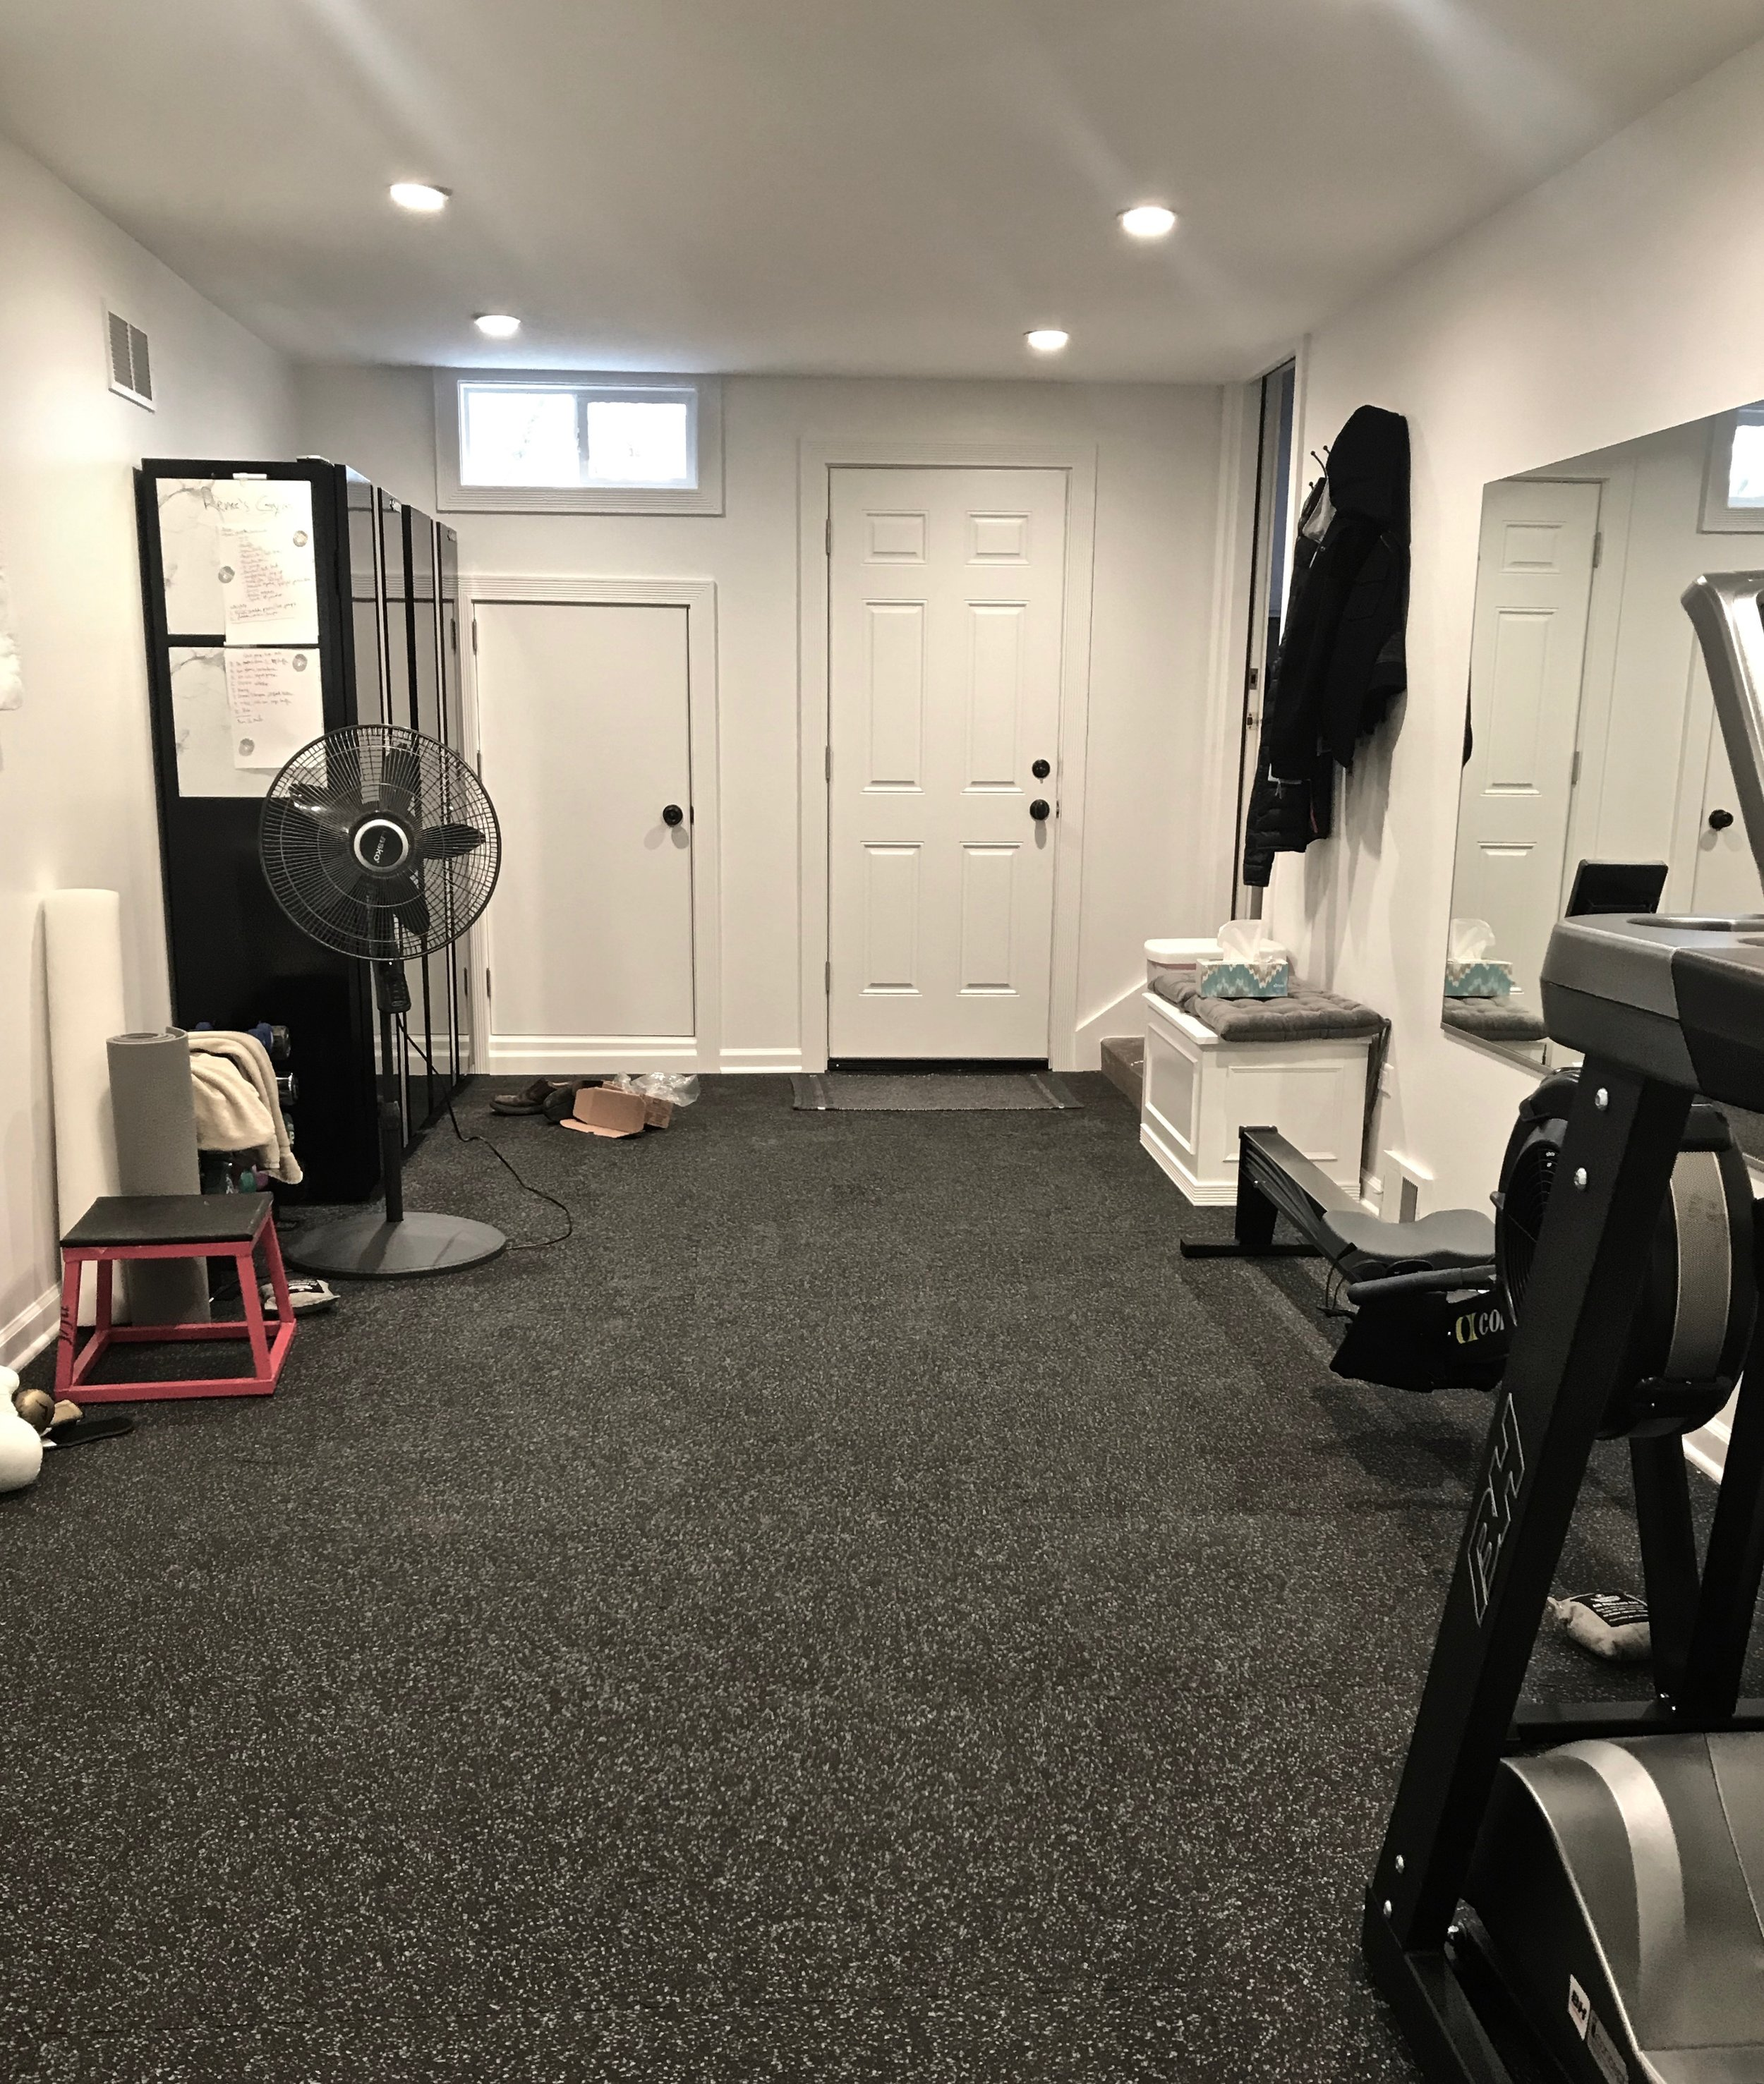 A view of the entry to the gym, with closed storage, new exterior door, new windows, and lockers. The clients can check their form in the 6' x 4' wall mirror, too. Heat is drawn from the main ductwork inside the home, and the walls are coated in a special scuff-resistant paint.